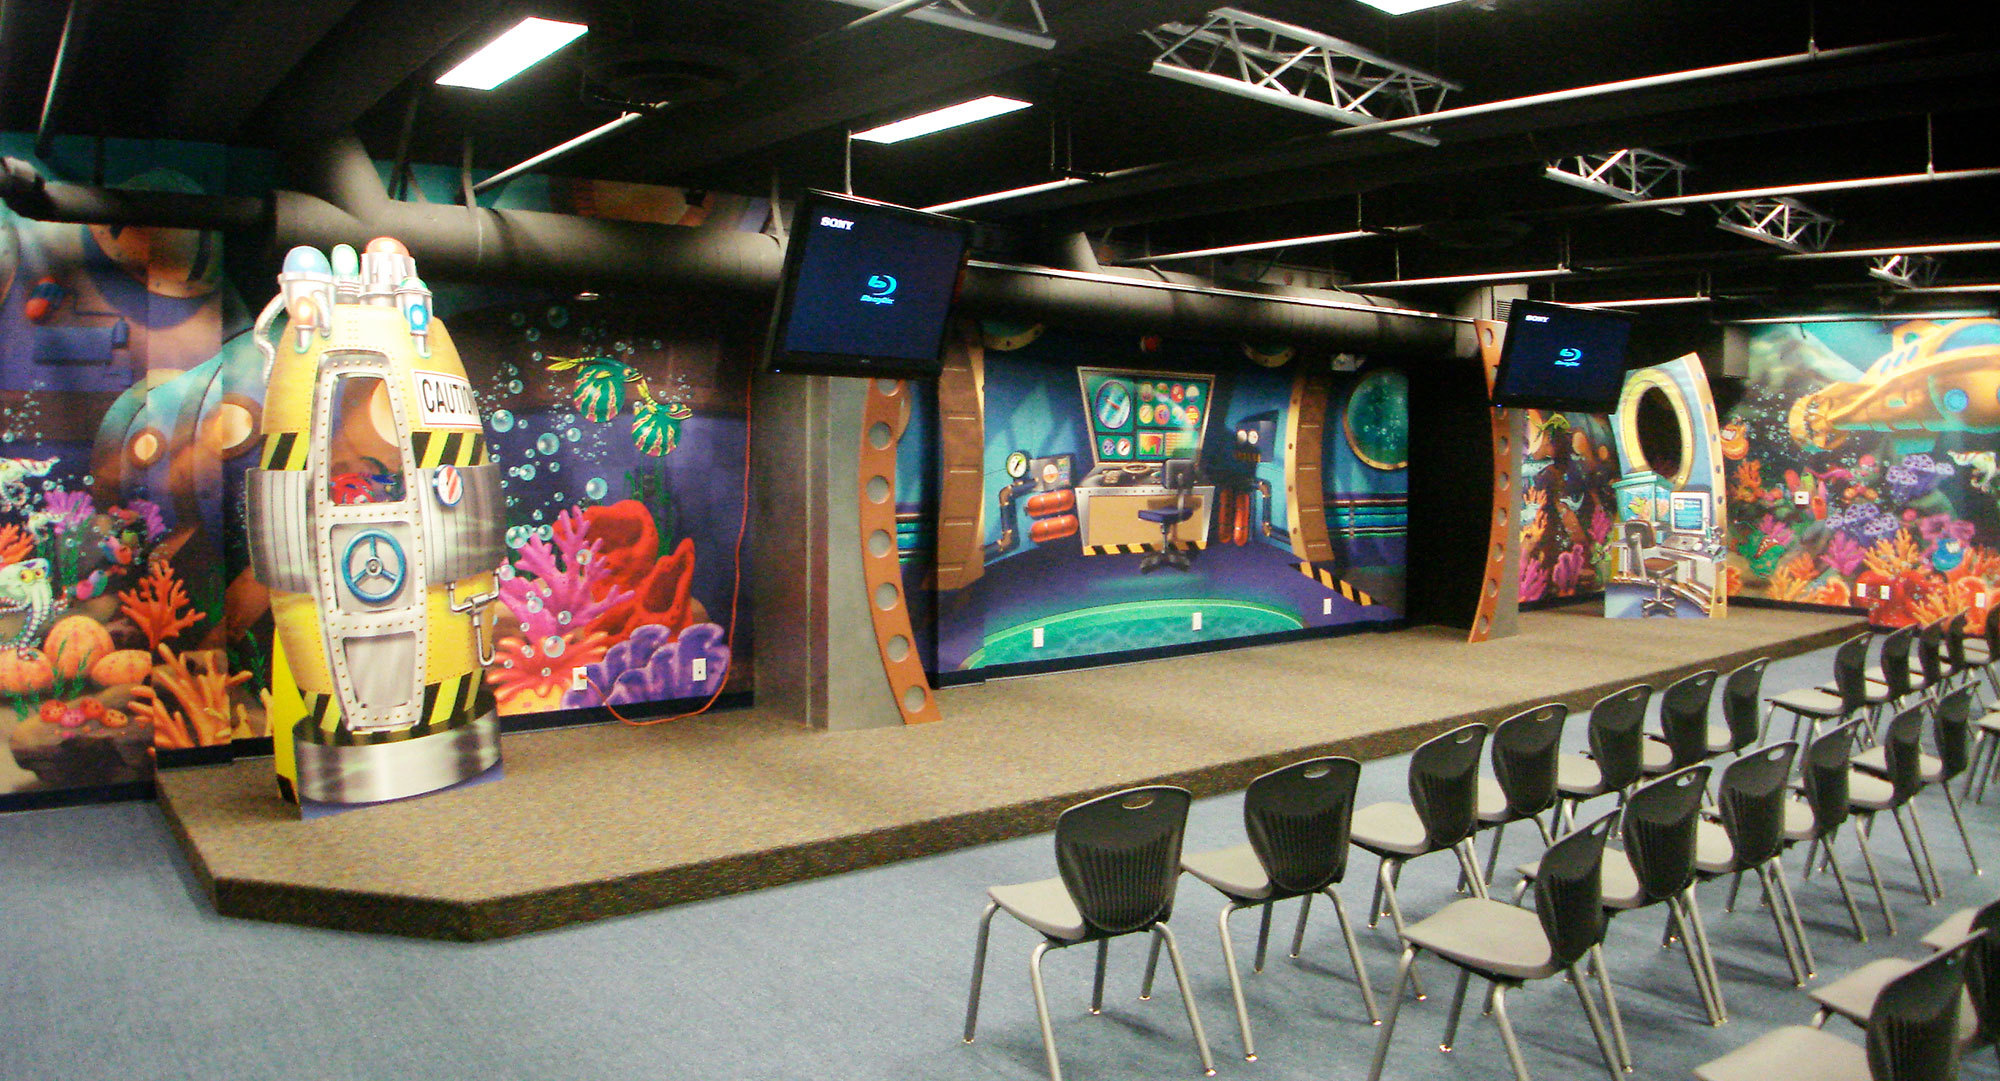 Undersea Themed Stage with 2D Cutouts